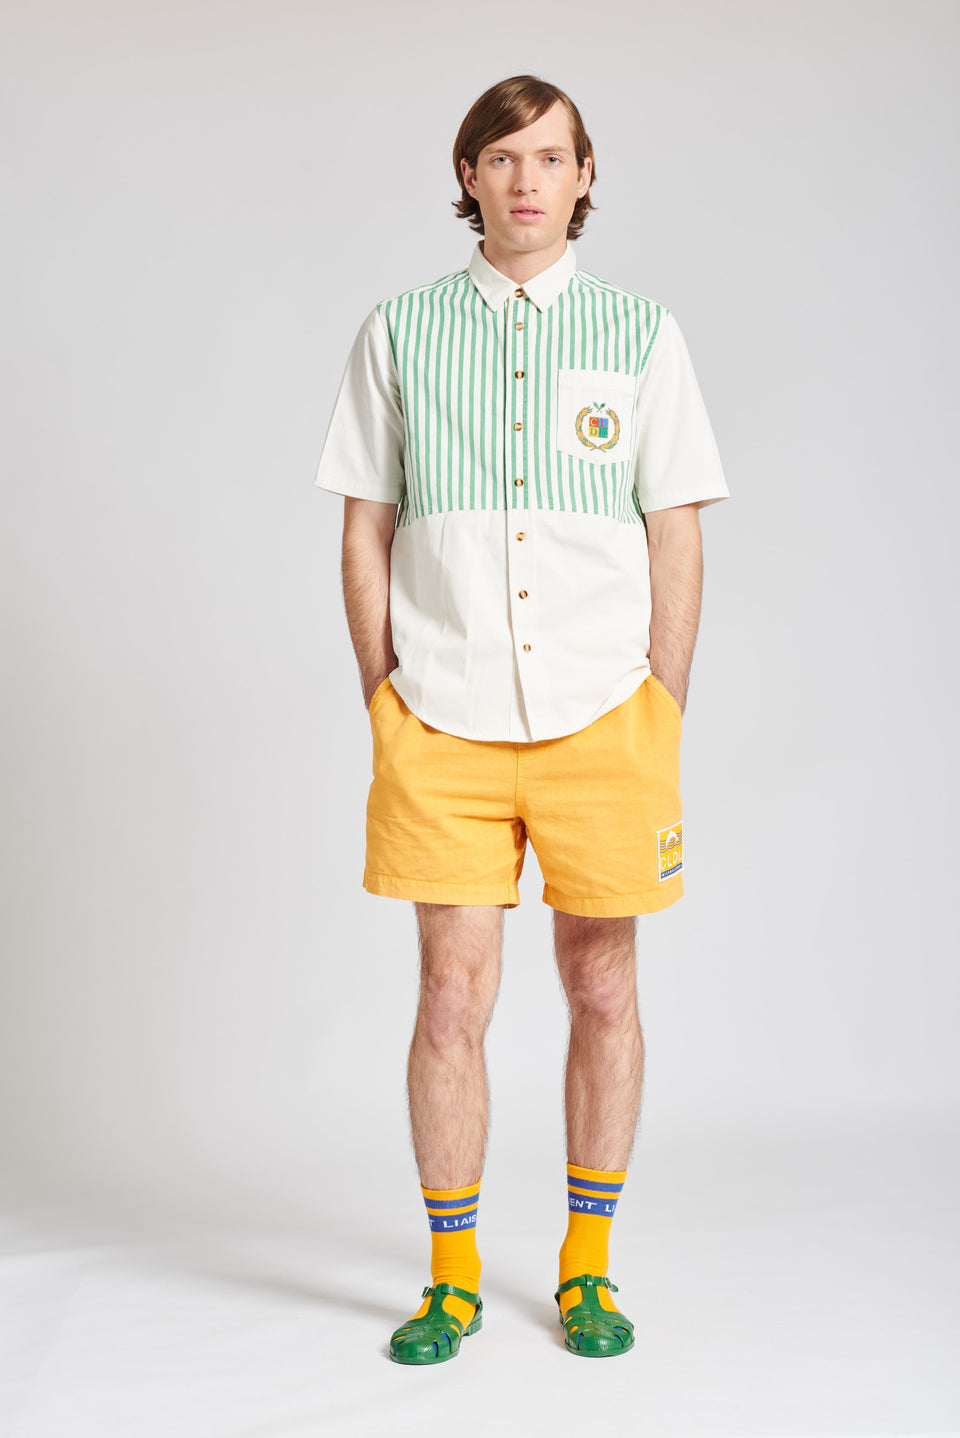 Lodge S/S Shirt (CLDL-082)